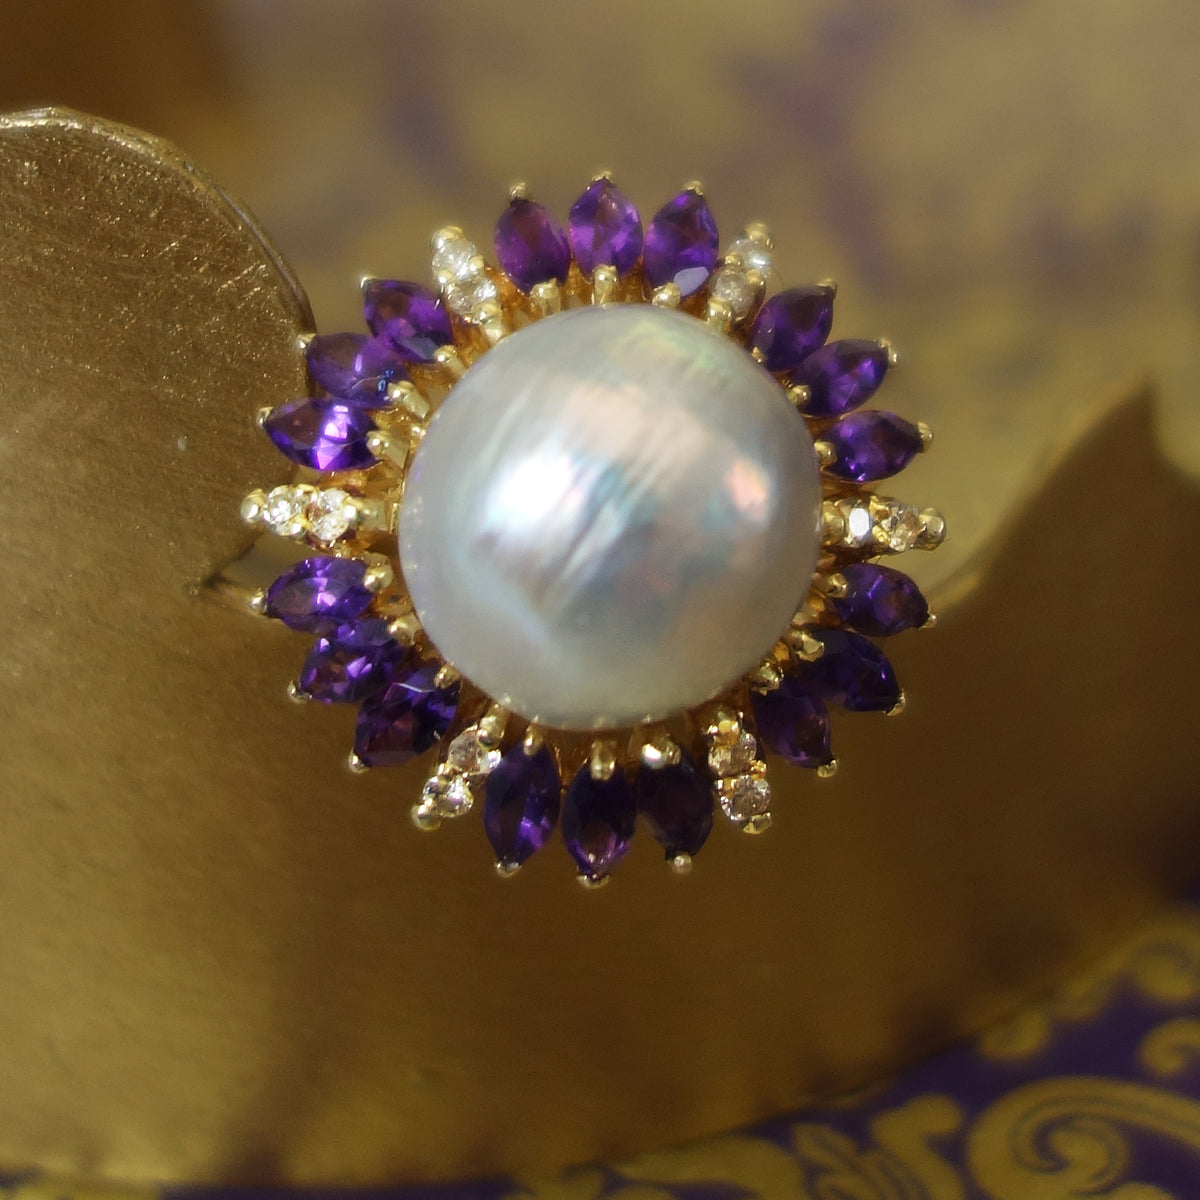 Luscious Jewels: pearl, diamond, amethyst and gold ring